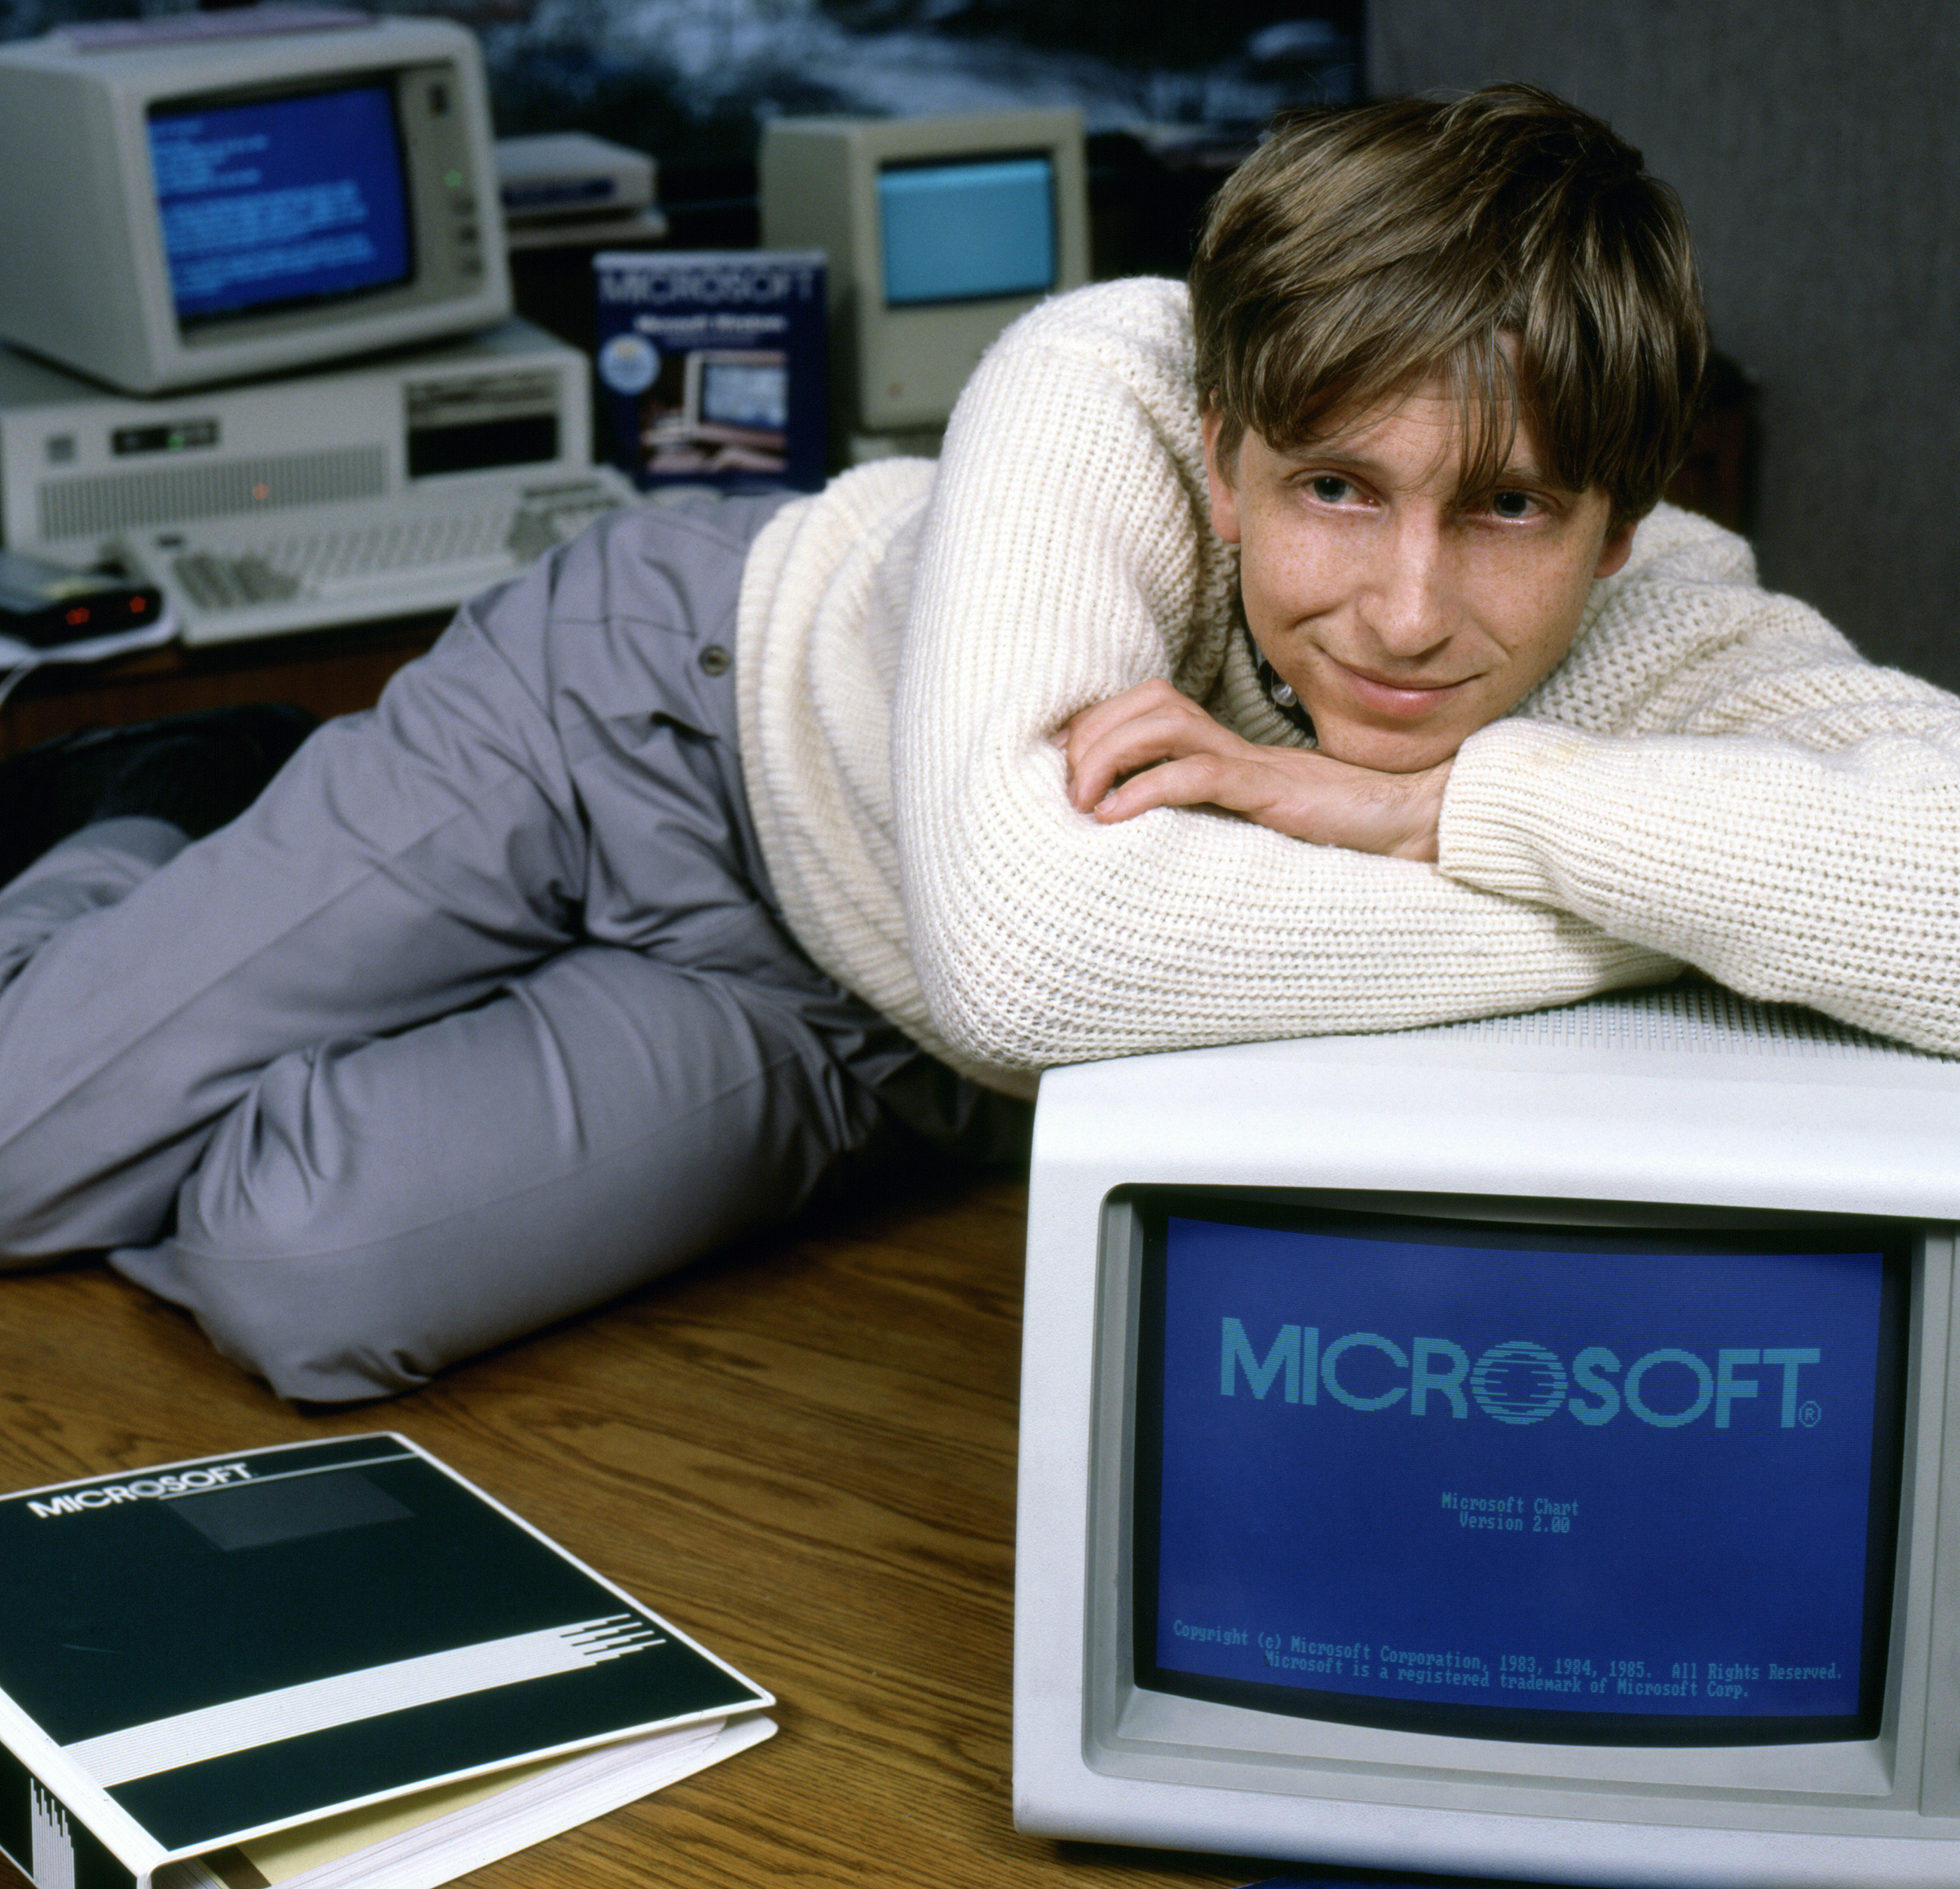 Bill Gates Portrait Session